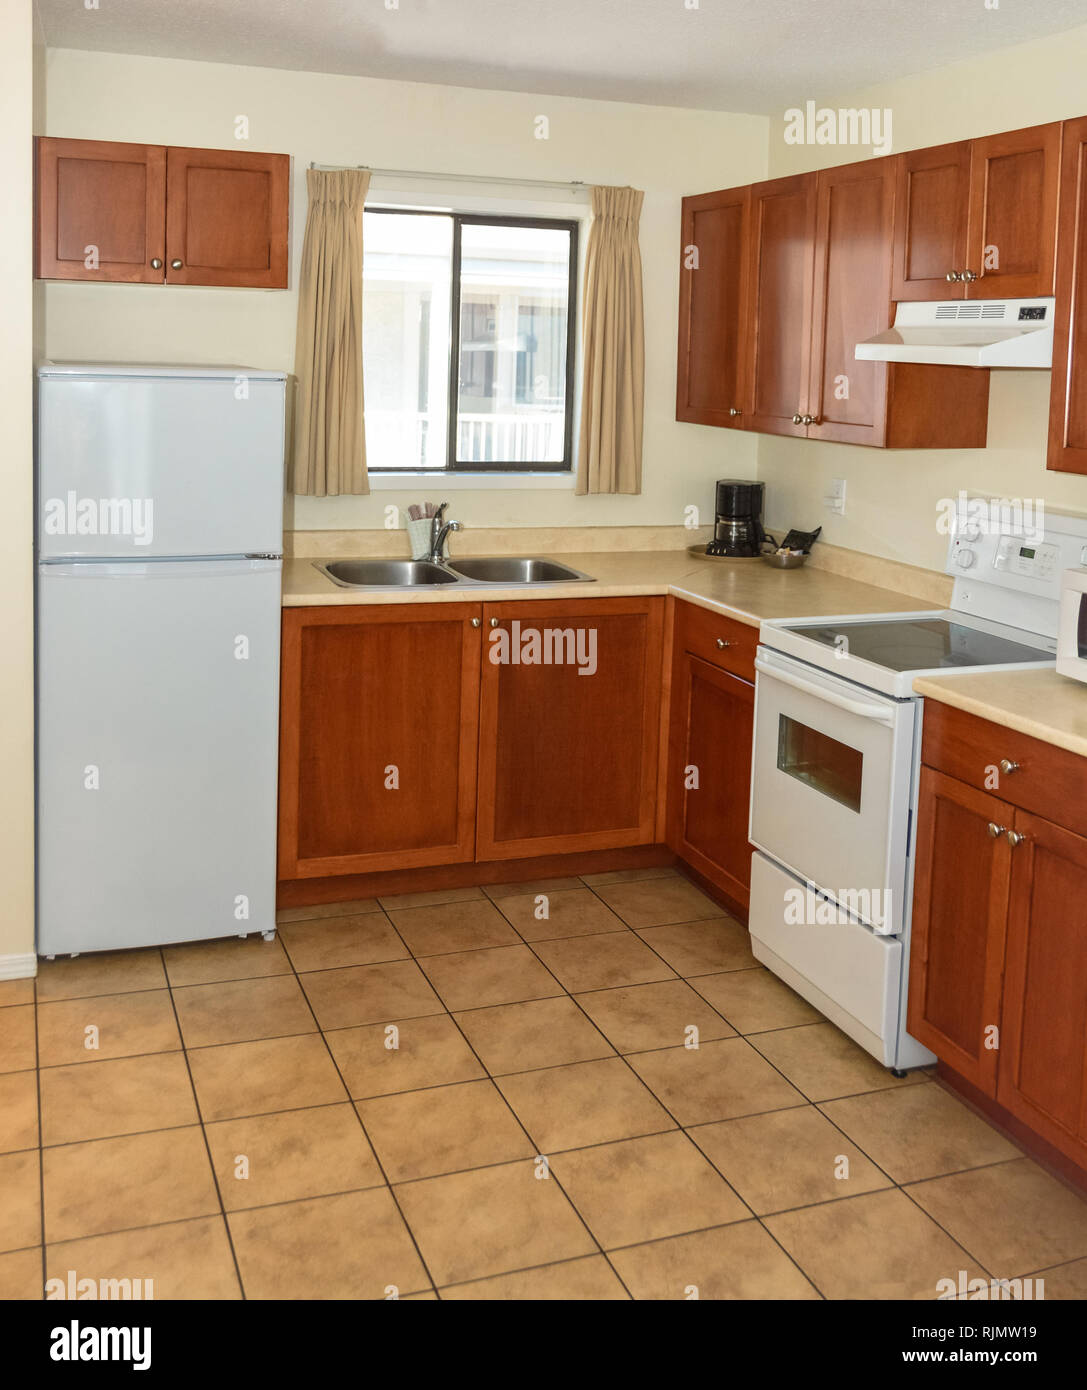 Small Kitchen With Wooden Cabinets Fridge And Electric